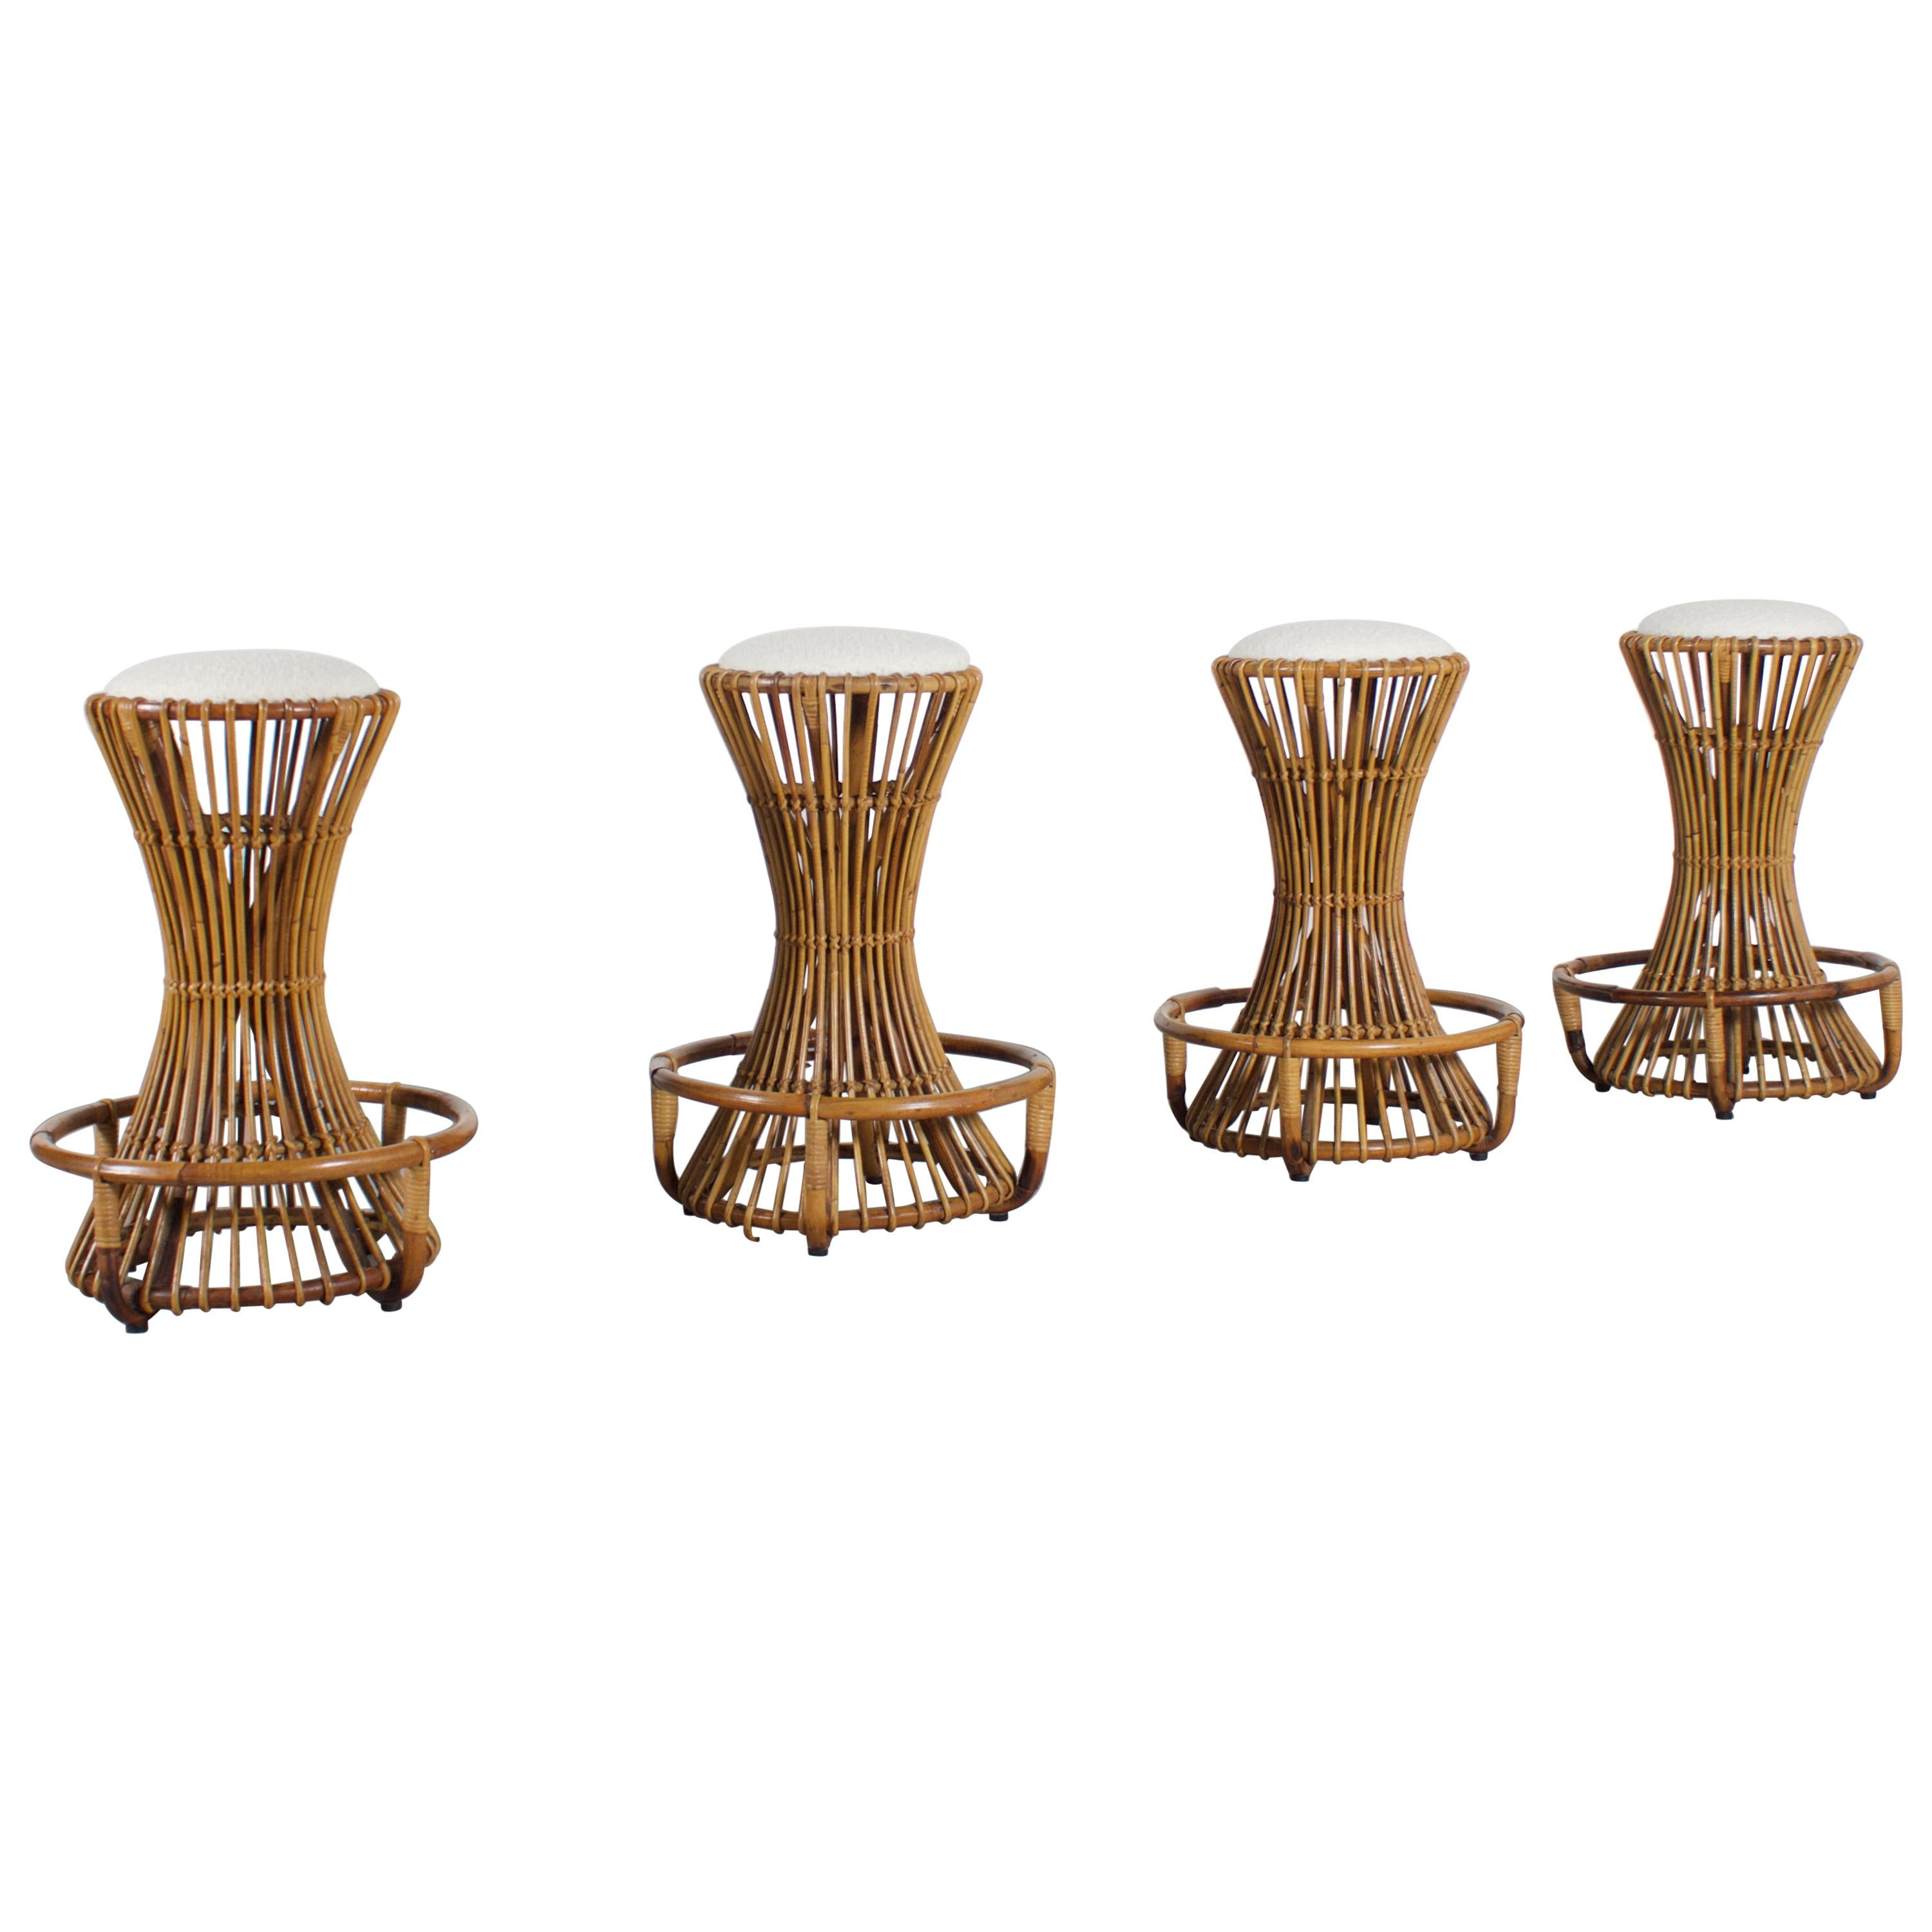 Set of Four Sculptural Rattan Bar Stools by Tito Agnoli for Bonacina, Italy